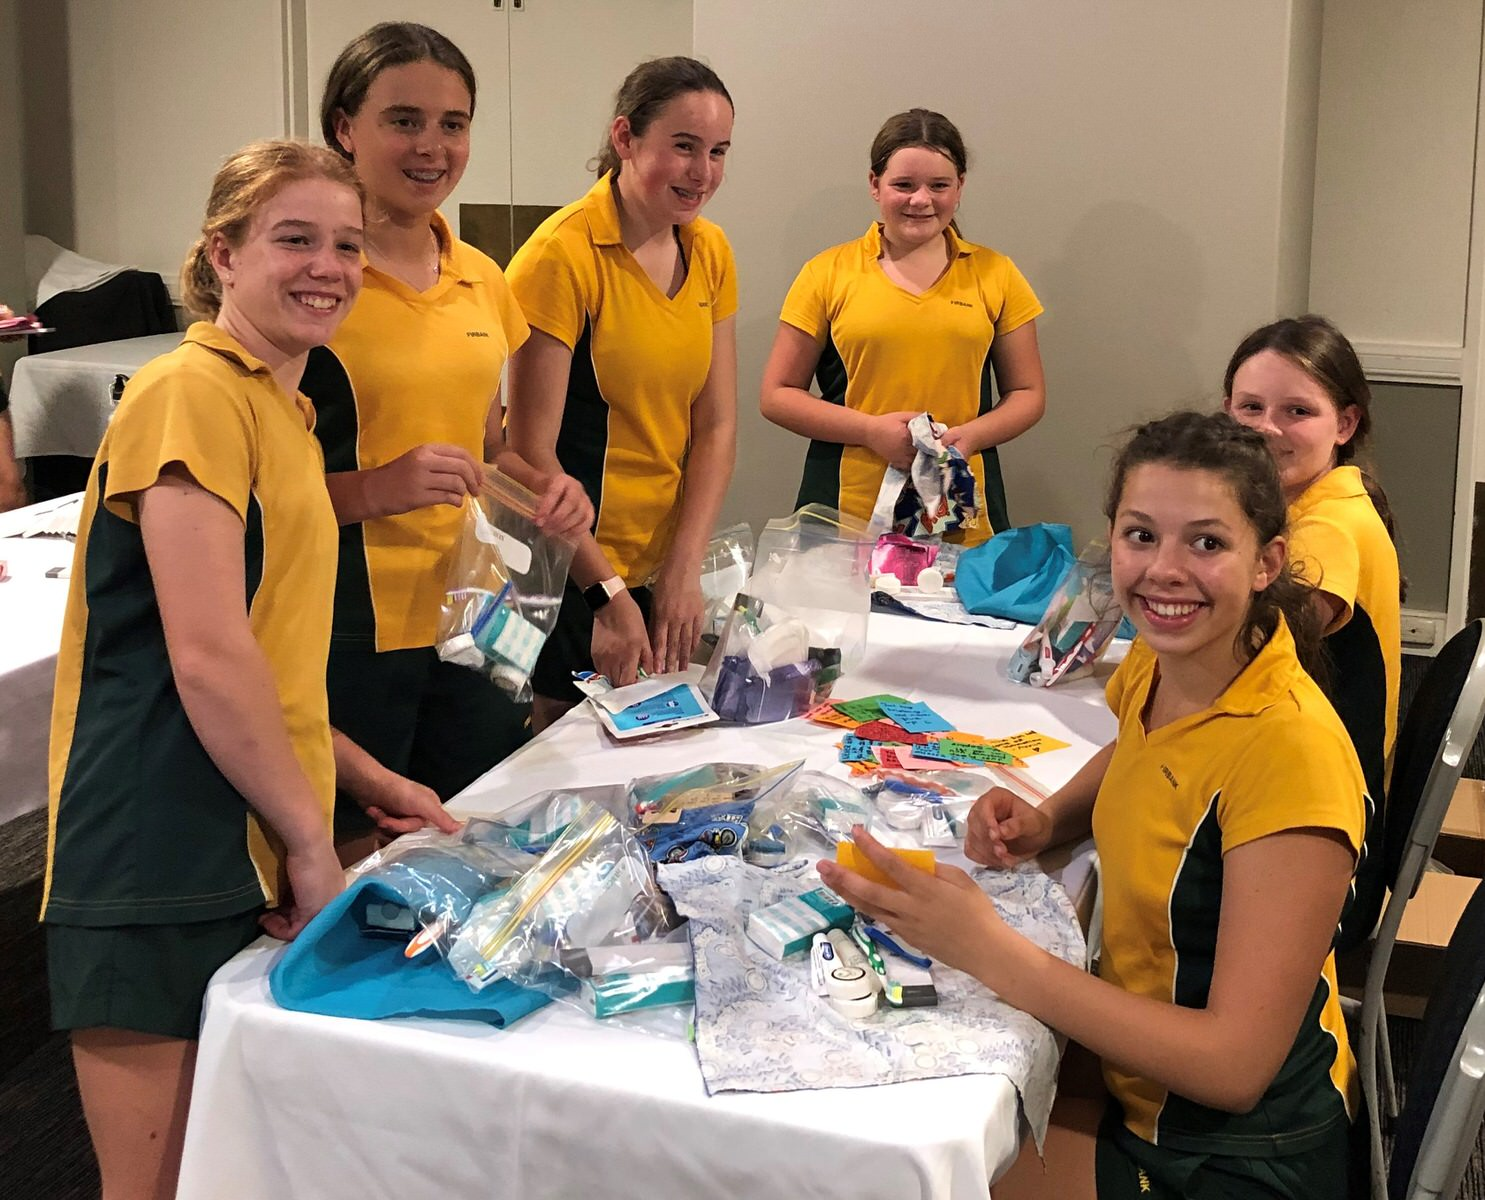 Service project - hygiene packs